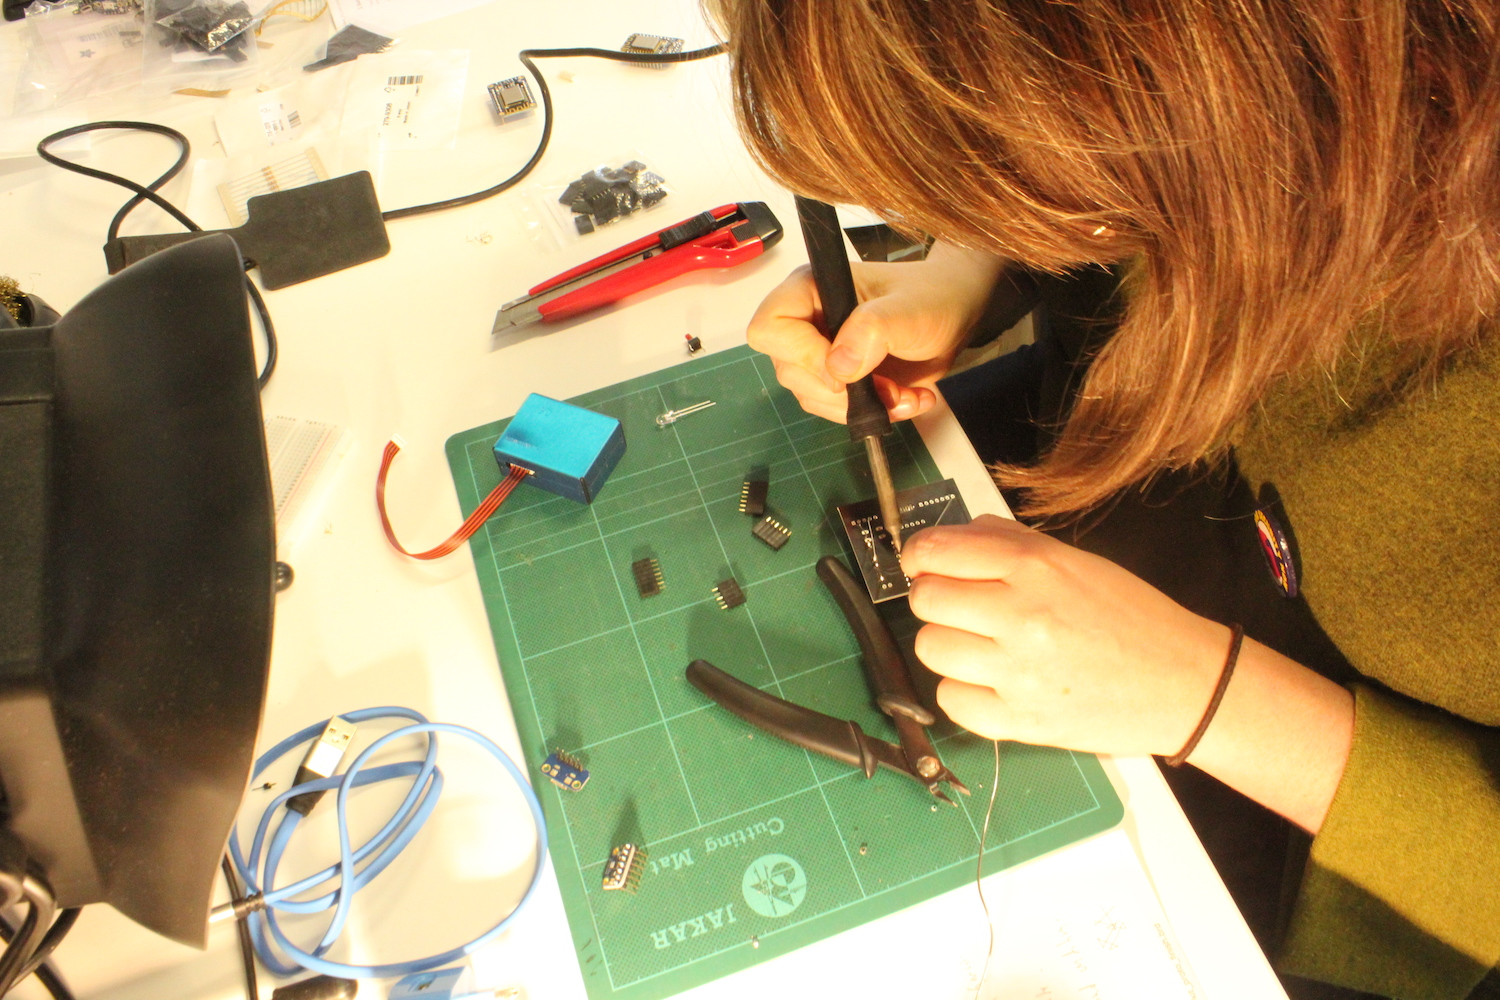 A researcher holds a soldering iron in her hand as she solders parts to the Dustbox 2.0 PCB